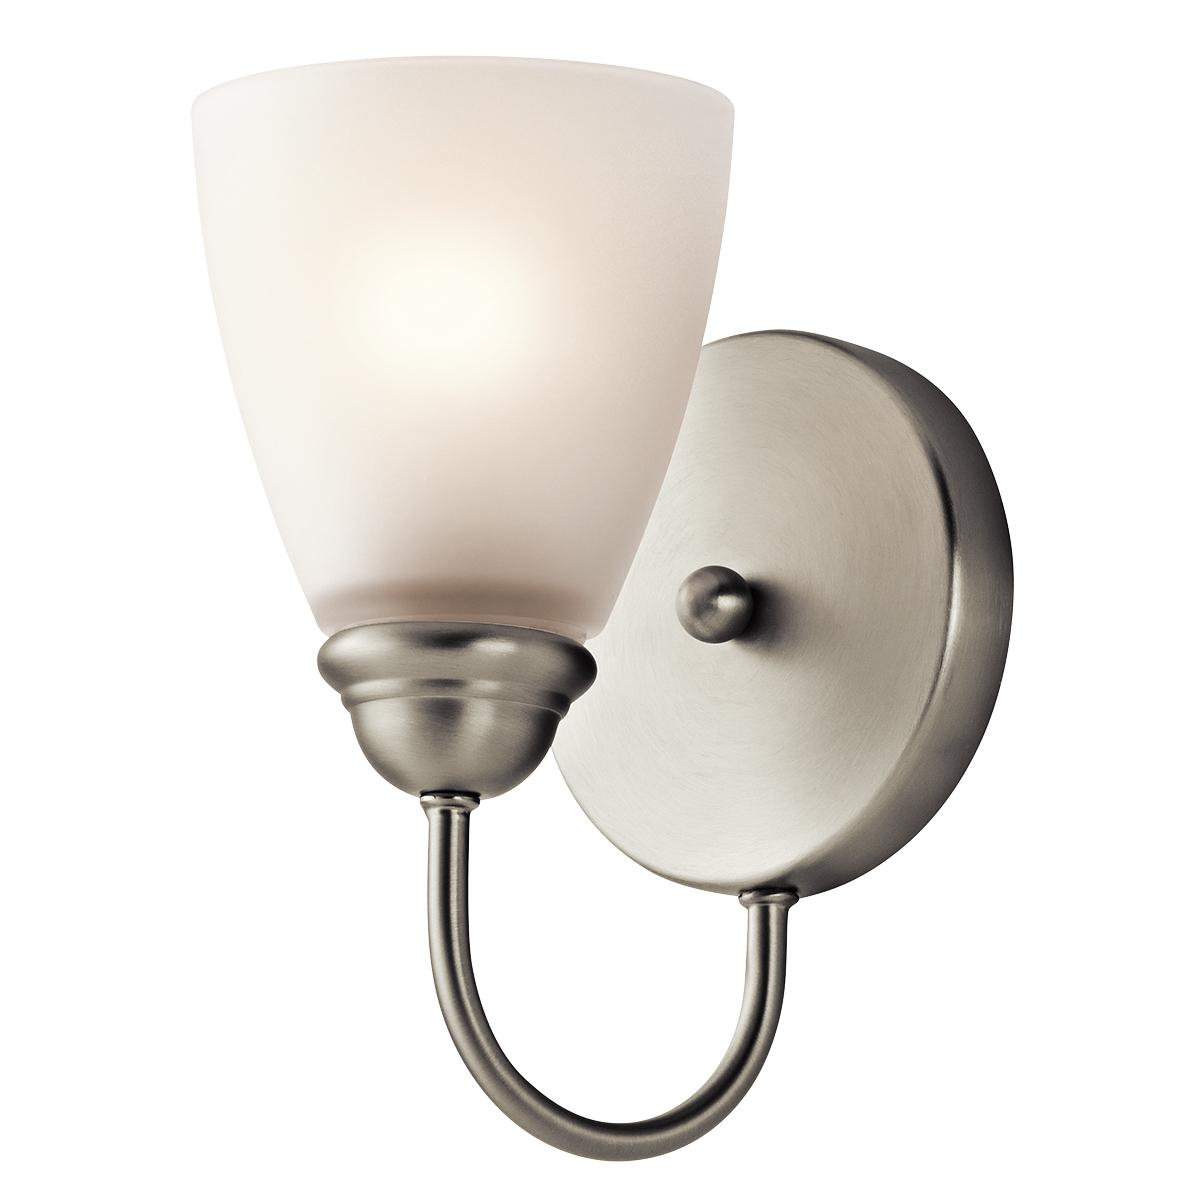 45637ni lighting jolie 1 light wall sconce